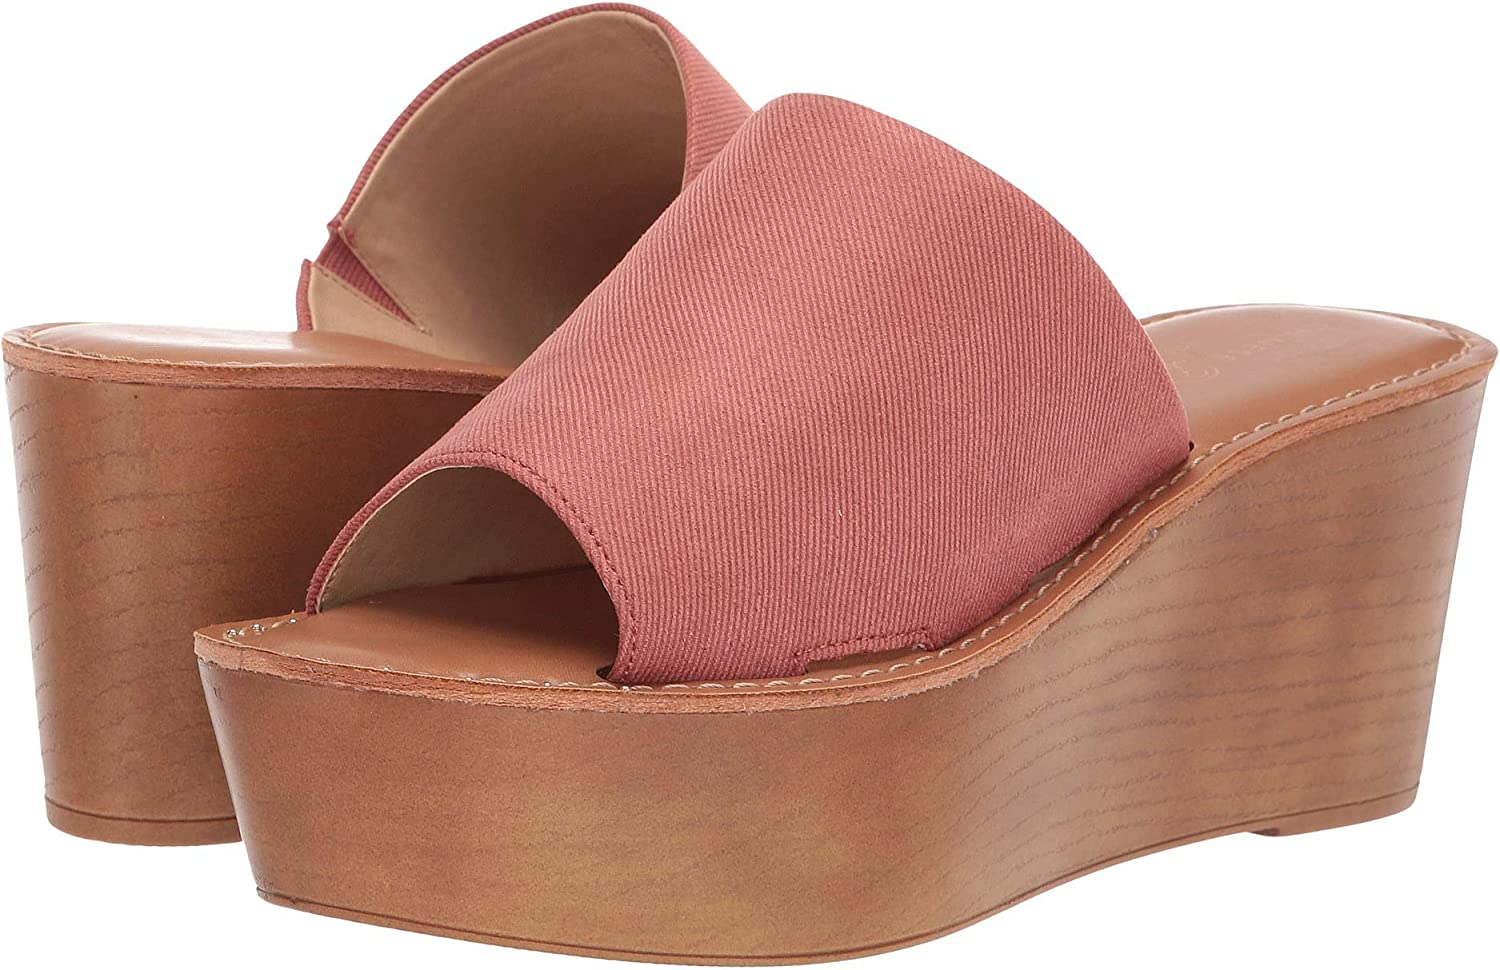 Chinese Laundry Women's Wedge Sandal